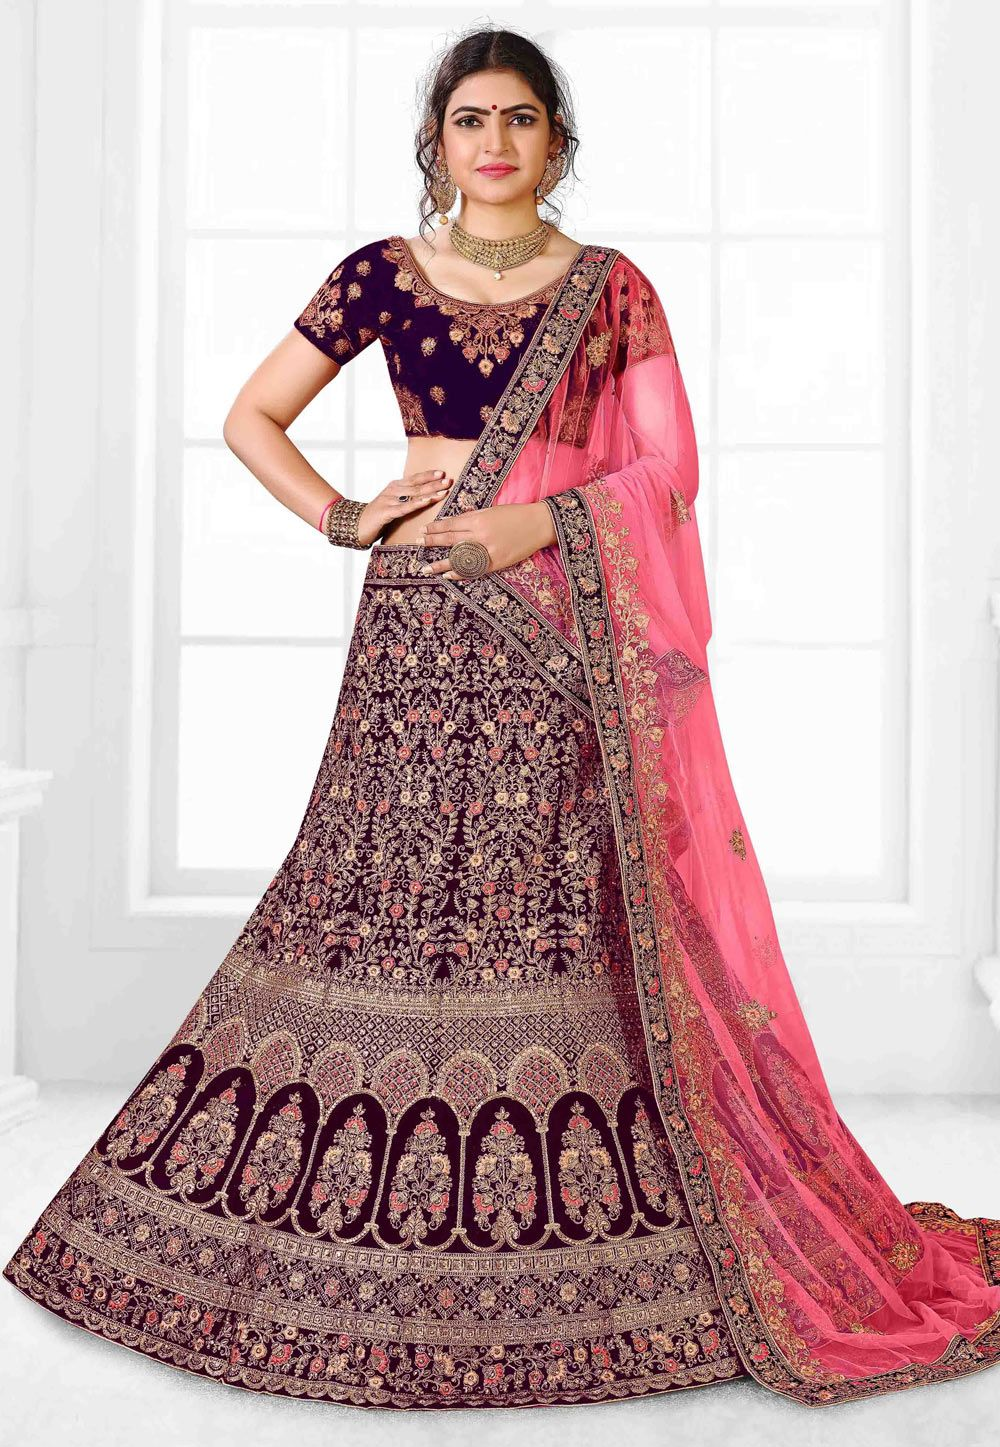 Buy Purple Velvet Embroidered Circular Lehenga Choli 169993 Online At Best Price From Vast Collection Of Lehenga Lehenga Choli Lehenga Gown Indian Bridal Dress